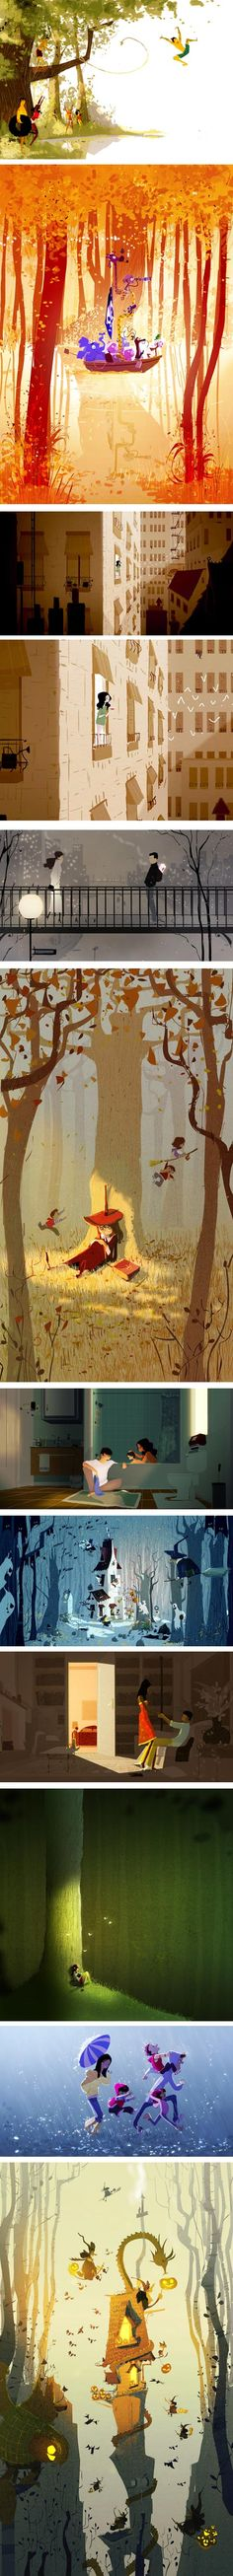 "Pascal Campion - ""Illustration compilation (via linesandcolors)"""